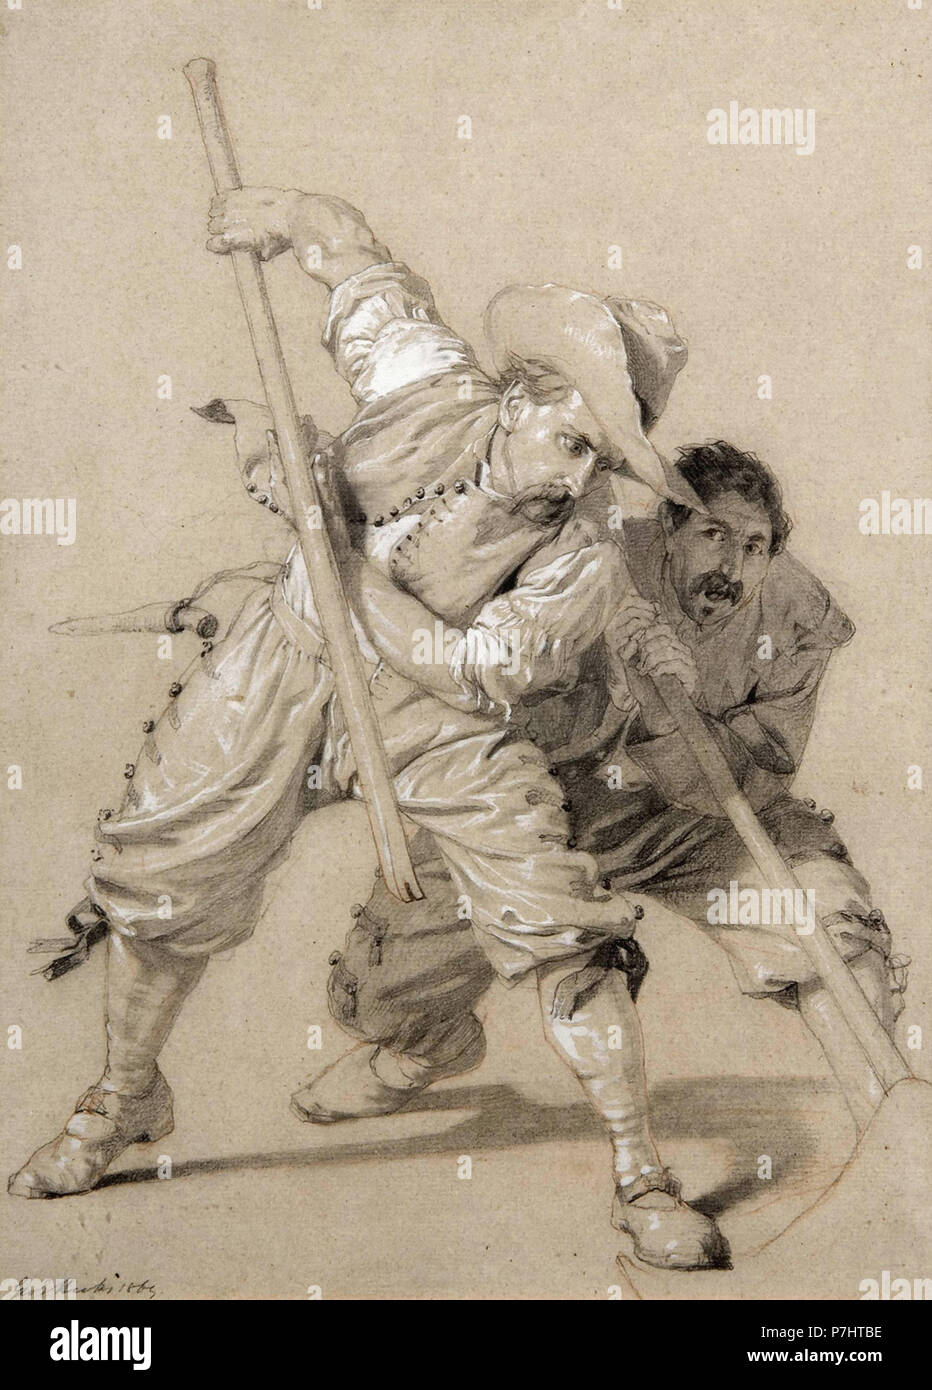 Hicks  George Elgar - Two Men  Engaging in Physical Labour - Stock Image